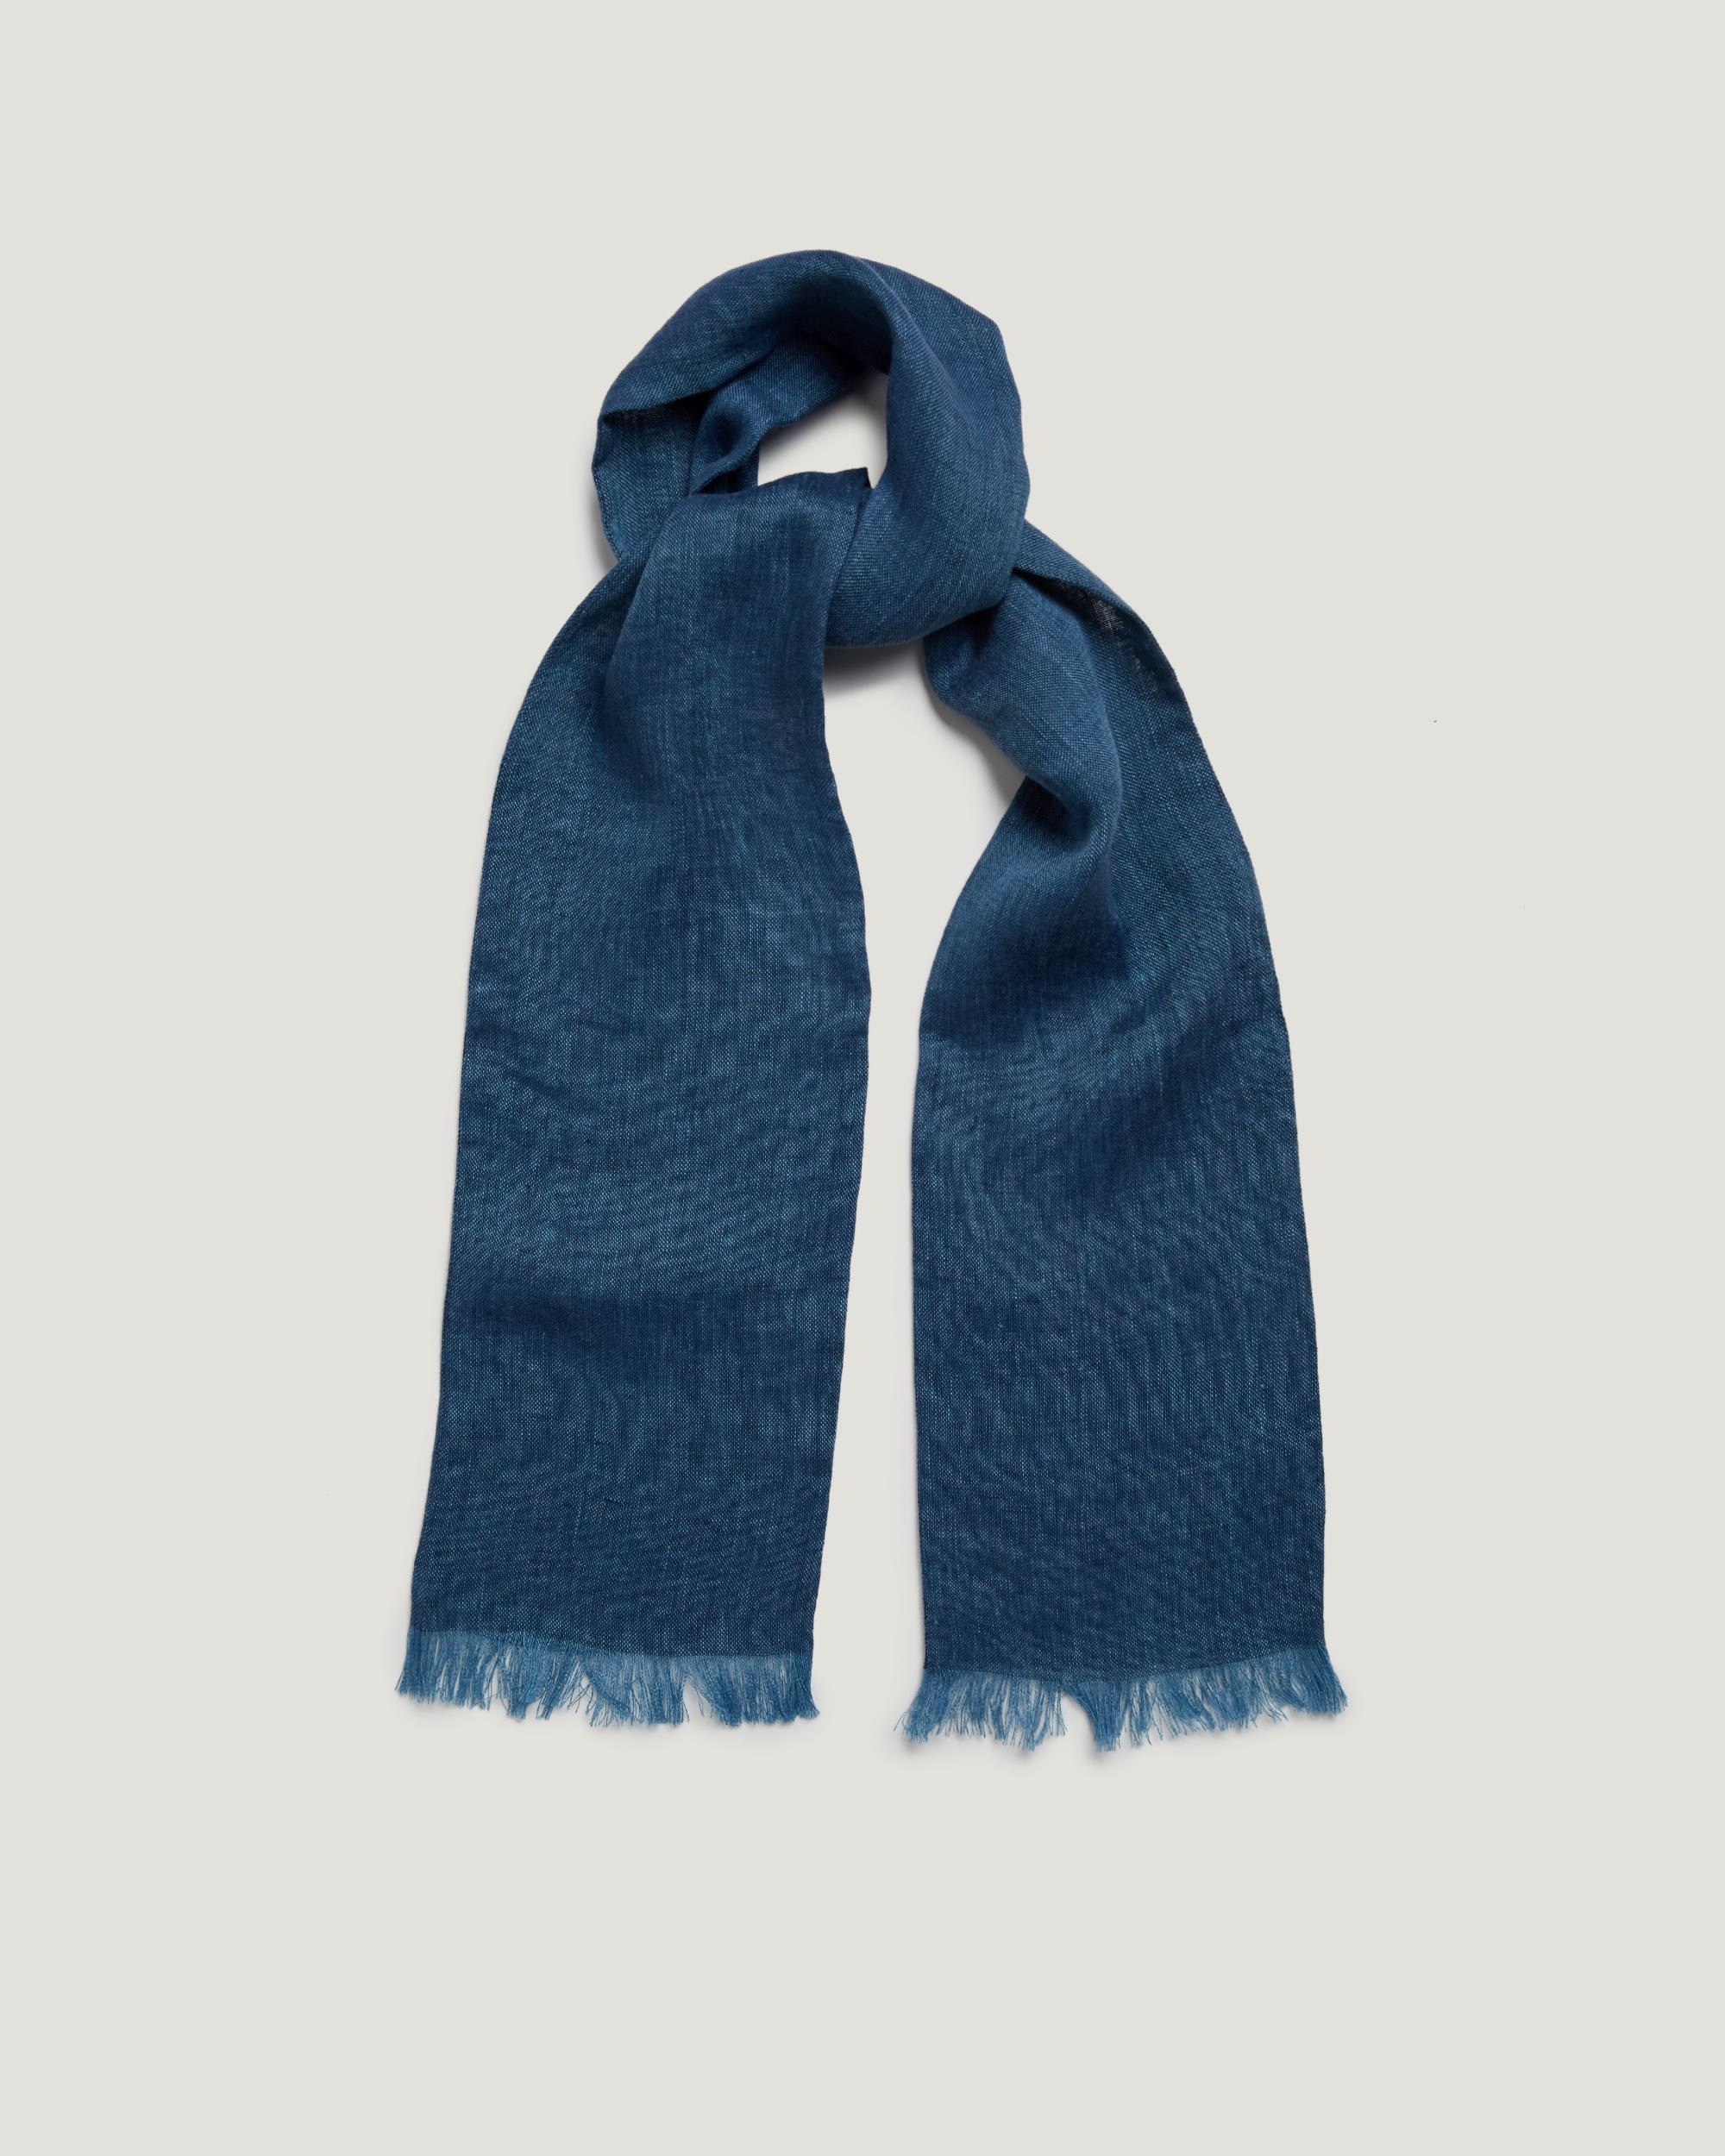 Our Men's Navy and Grey Washed Stripe Linen Scarf is made from linen and acetate. Made in Italy.